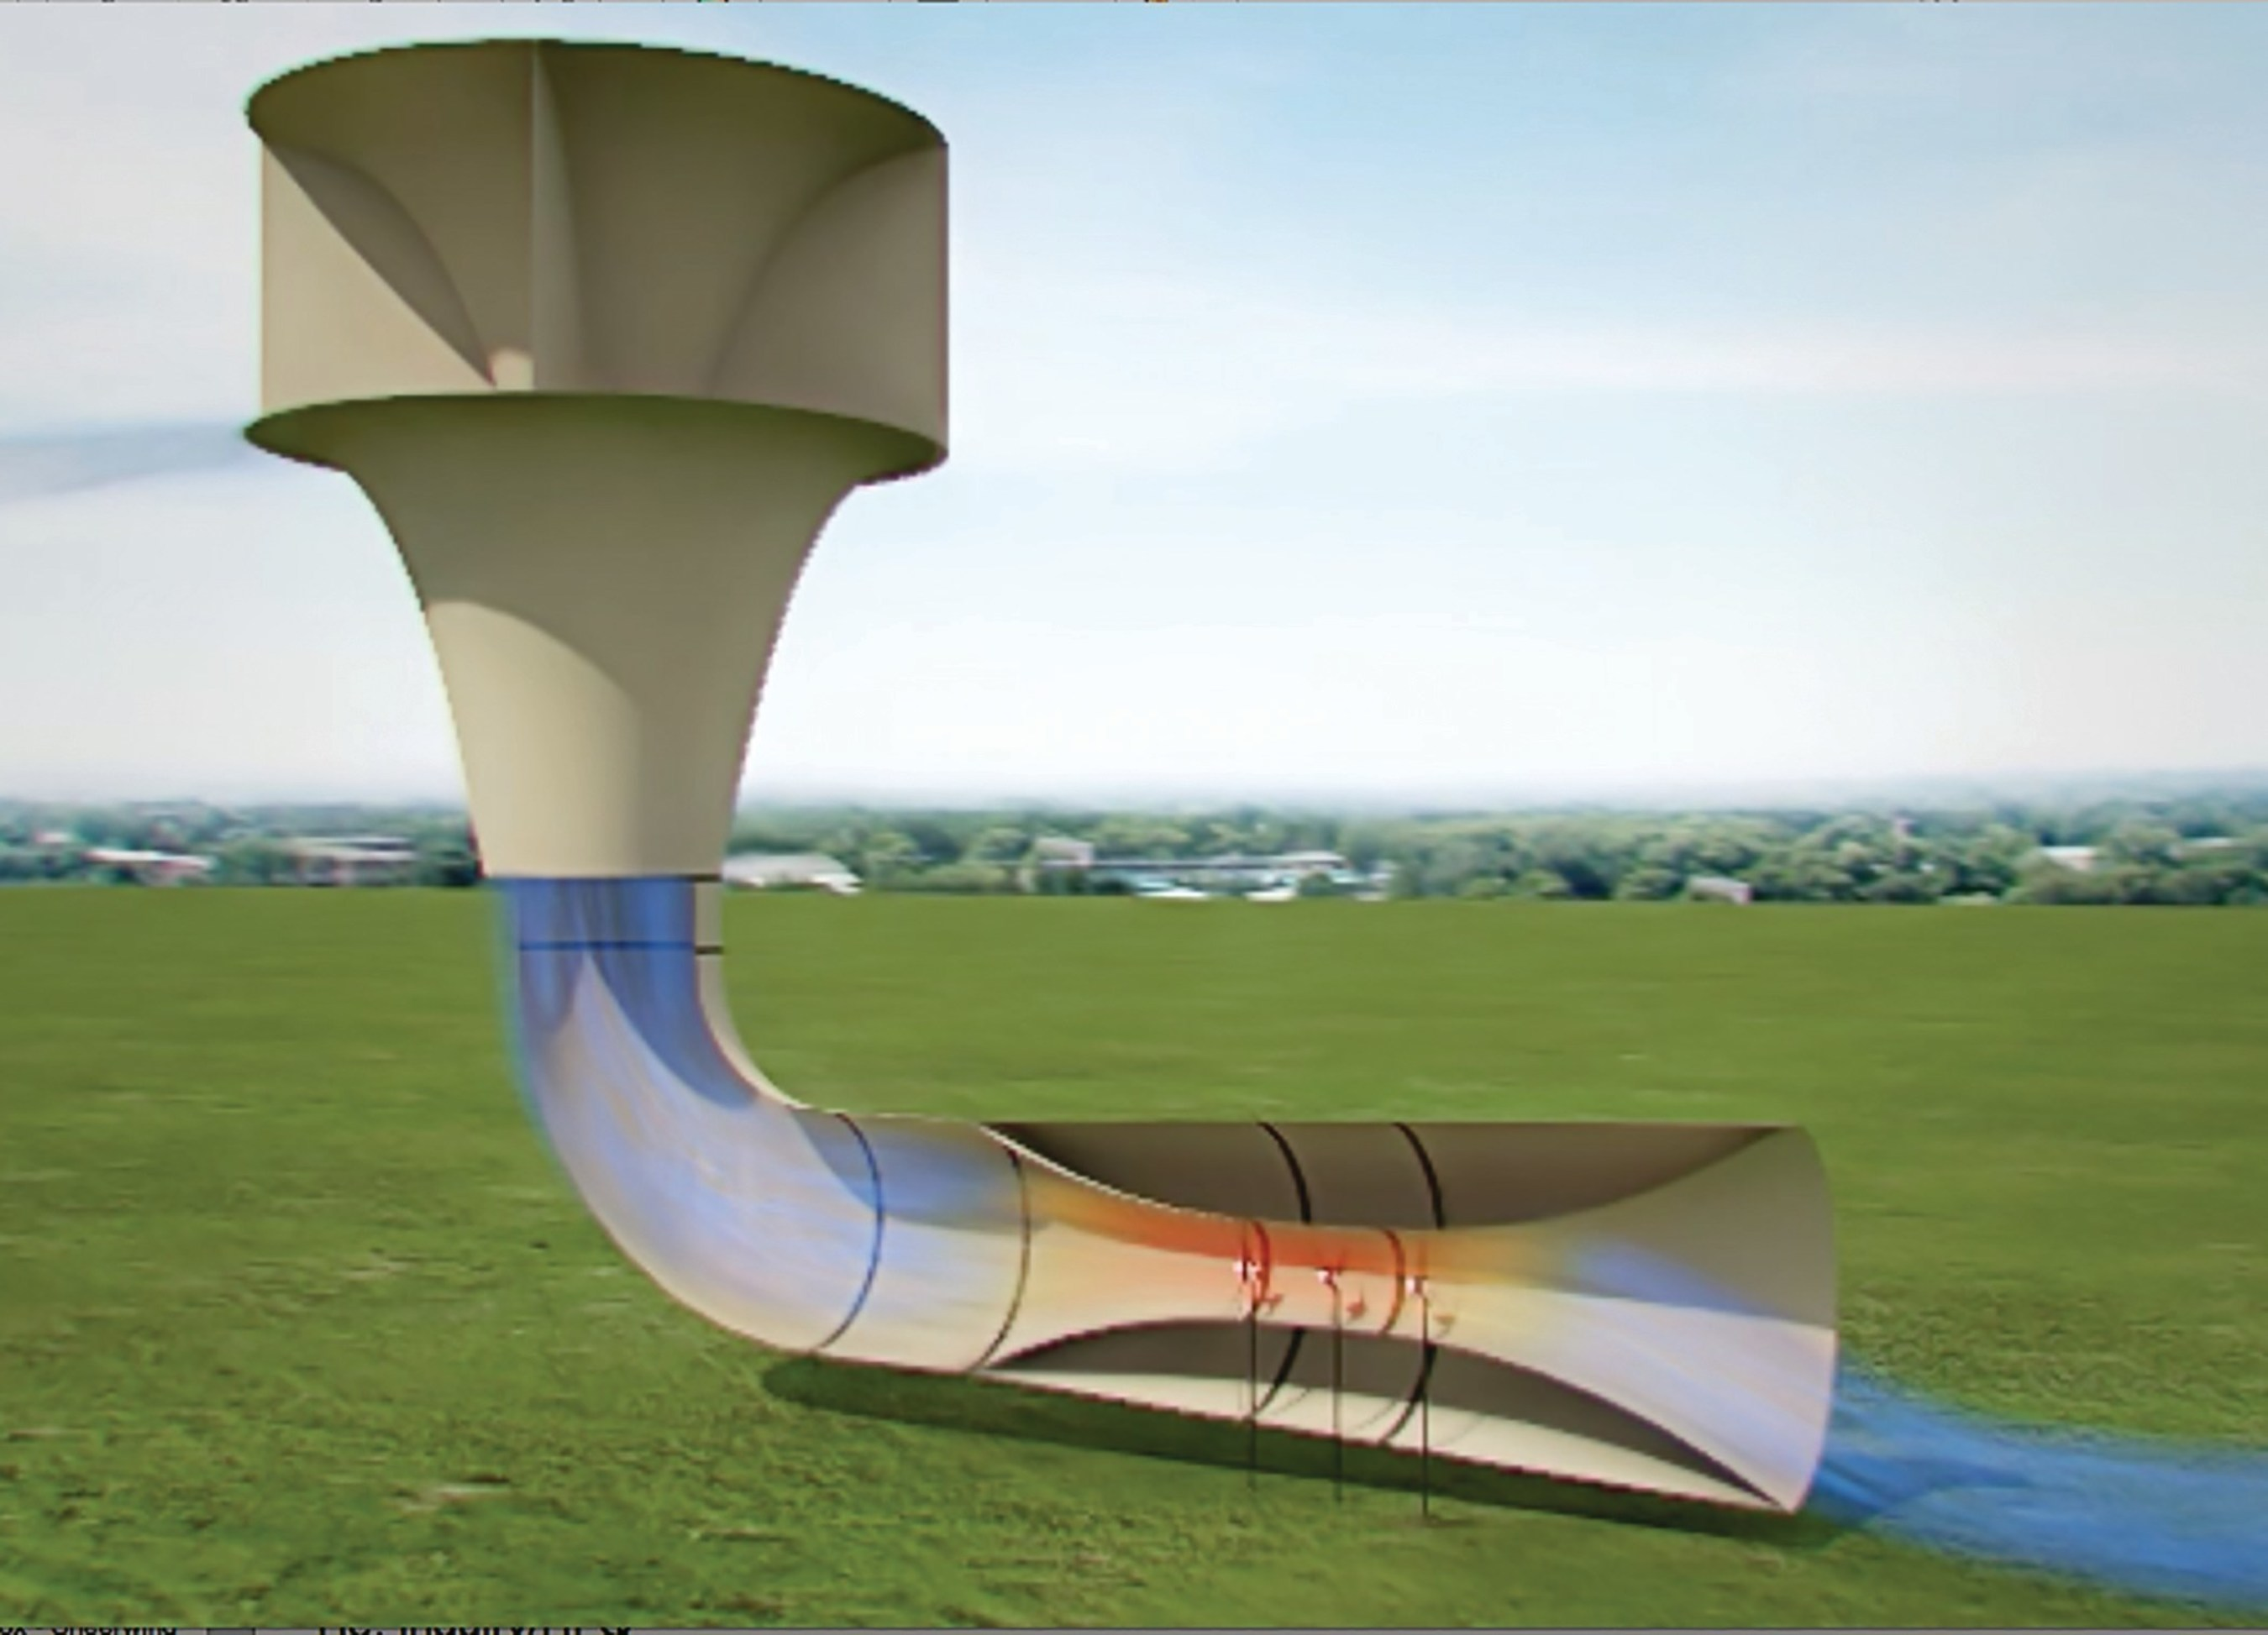 Netherland Investment Company to Manufacture and Distribute SheerWind Technology